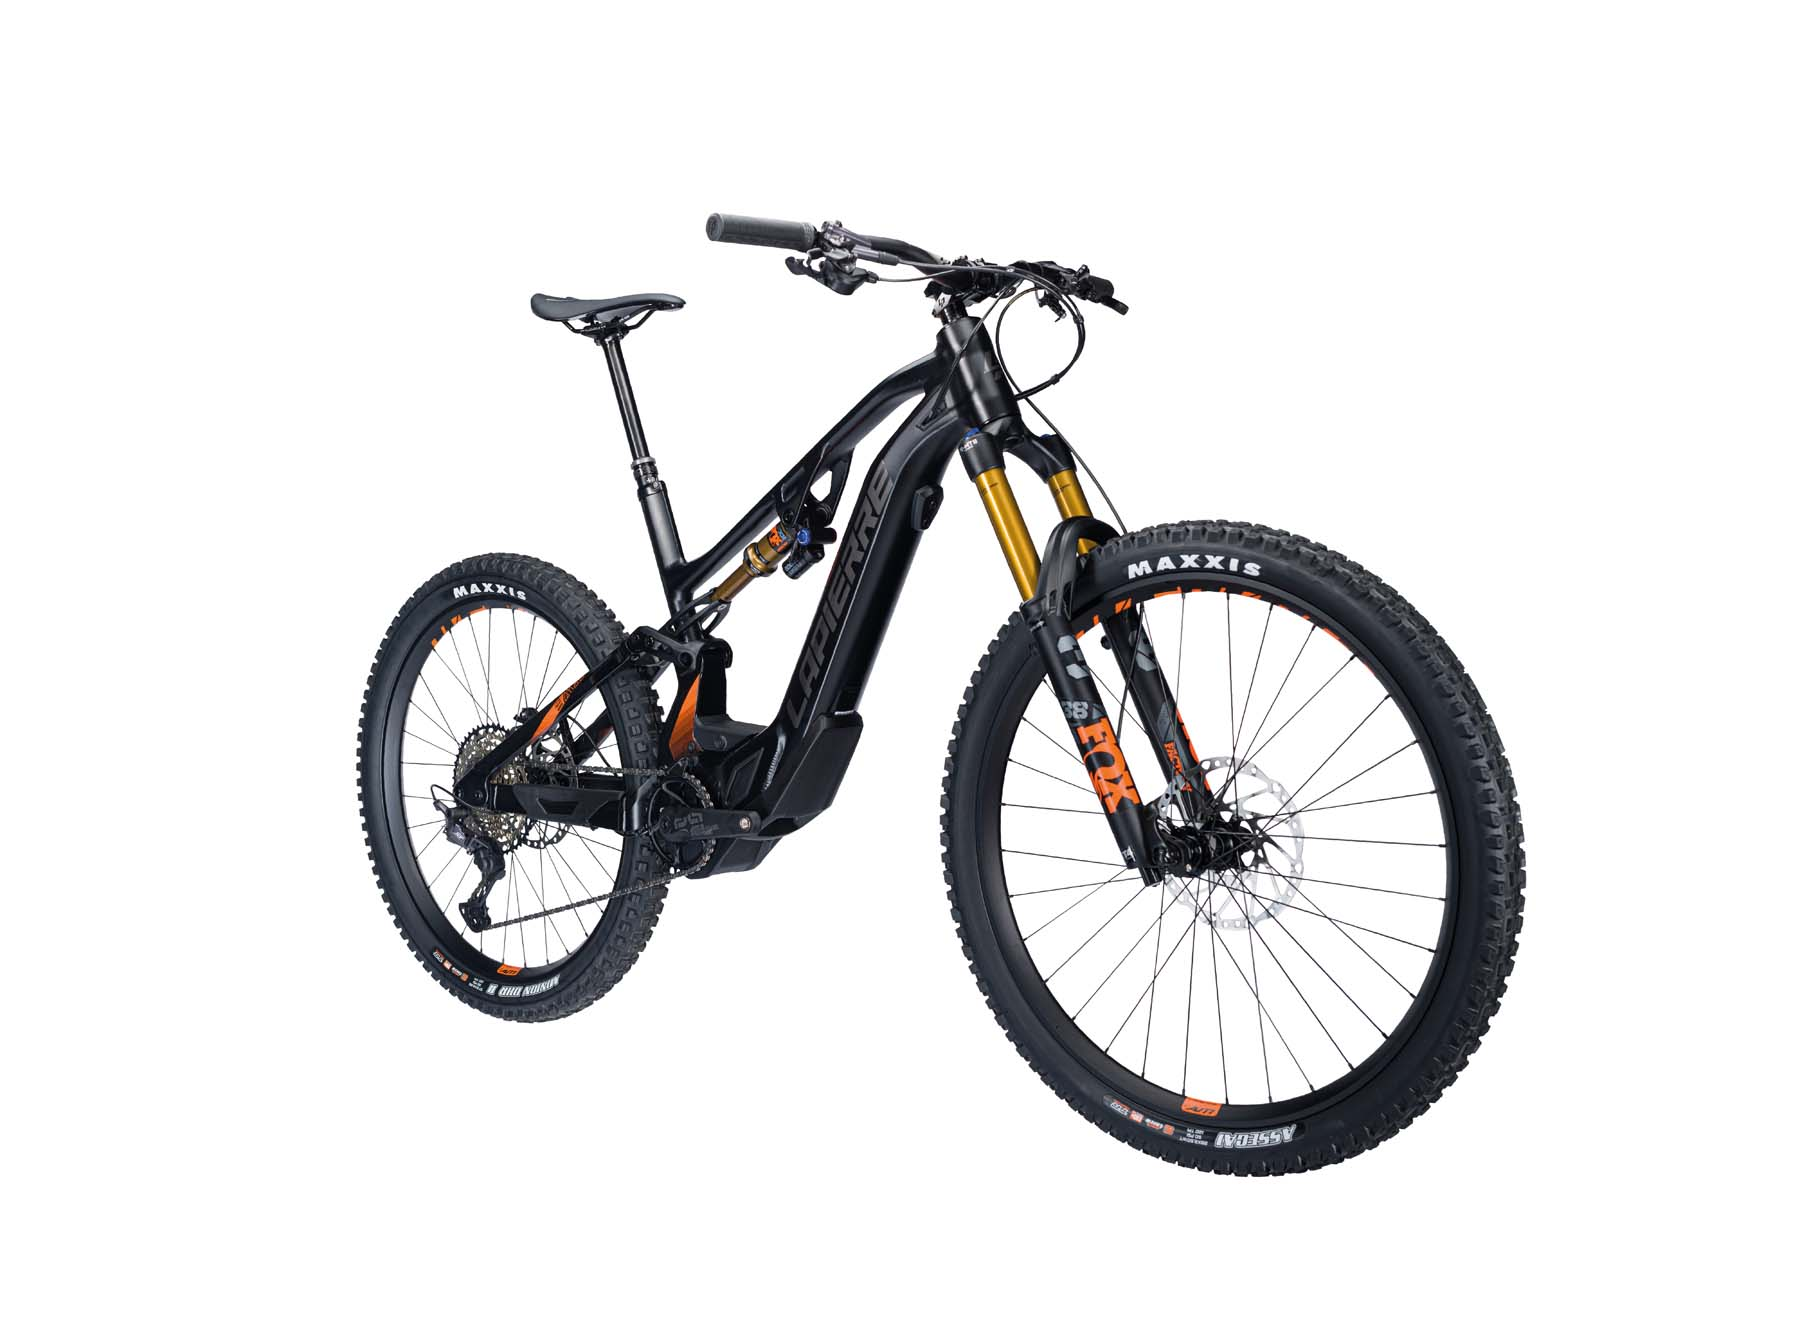 Lapierre Overvolt AM 8.6 2021 MTB Eléctrica All-Mountain 2